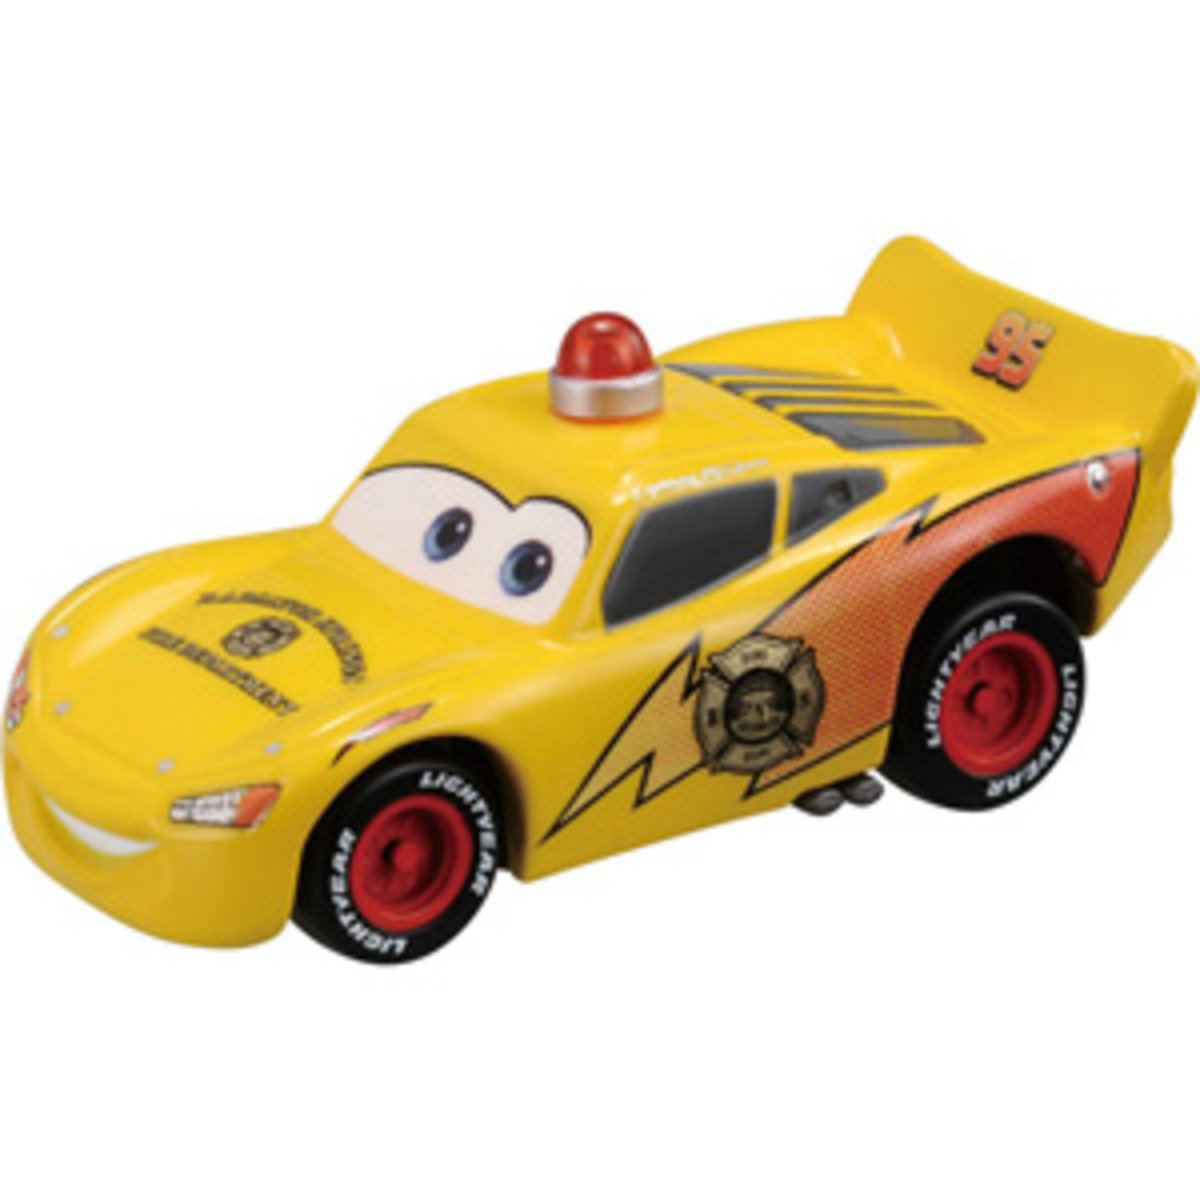 Disney Pixar Cars C-31 Rescue Go Lightning McQueen